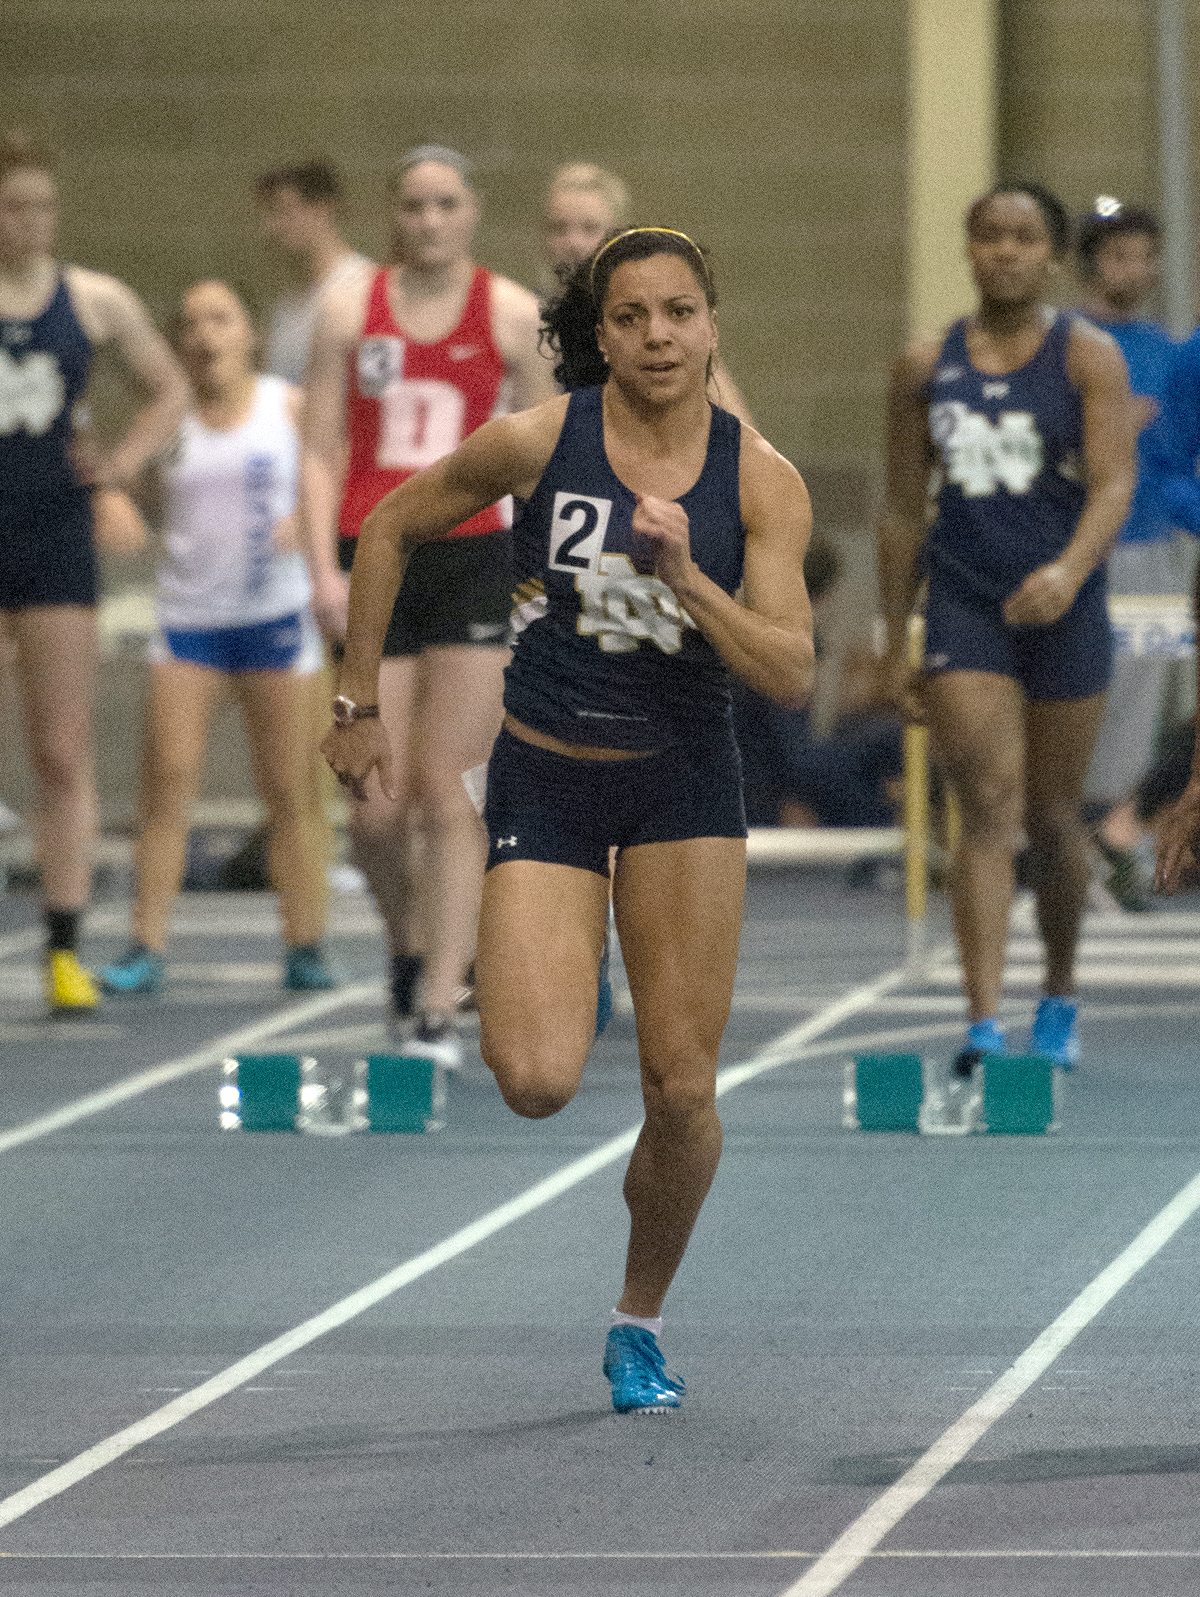 Irish senior Jade Barber competes in the 60-meter dash at the Blue & Gold Invitational on Dec. 5 at Loftus Sports Center. Barber took first place in the finals with a time of 7.59 seconds.